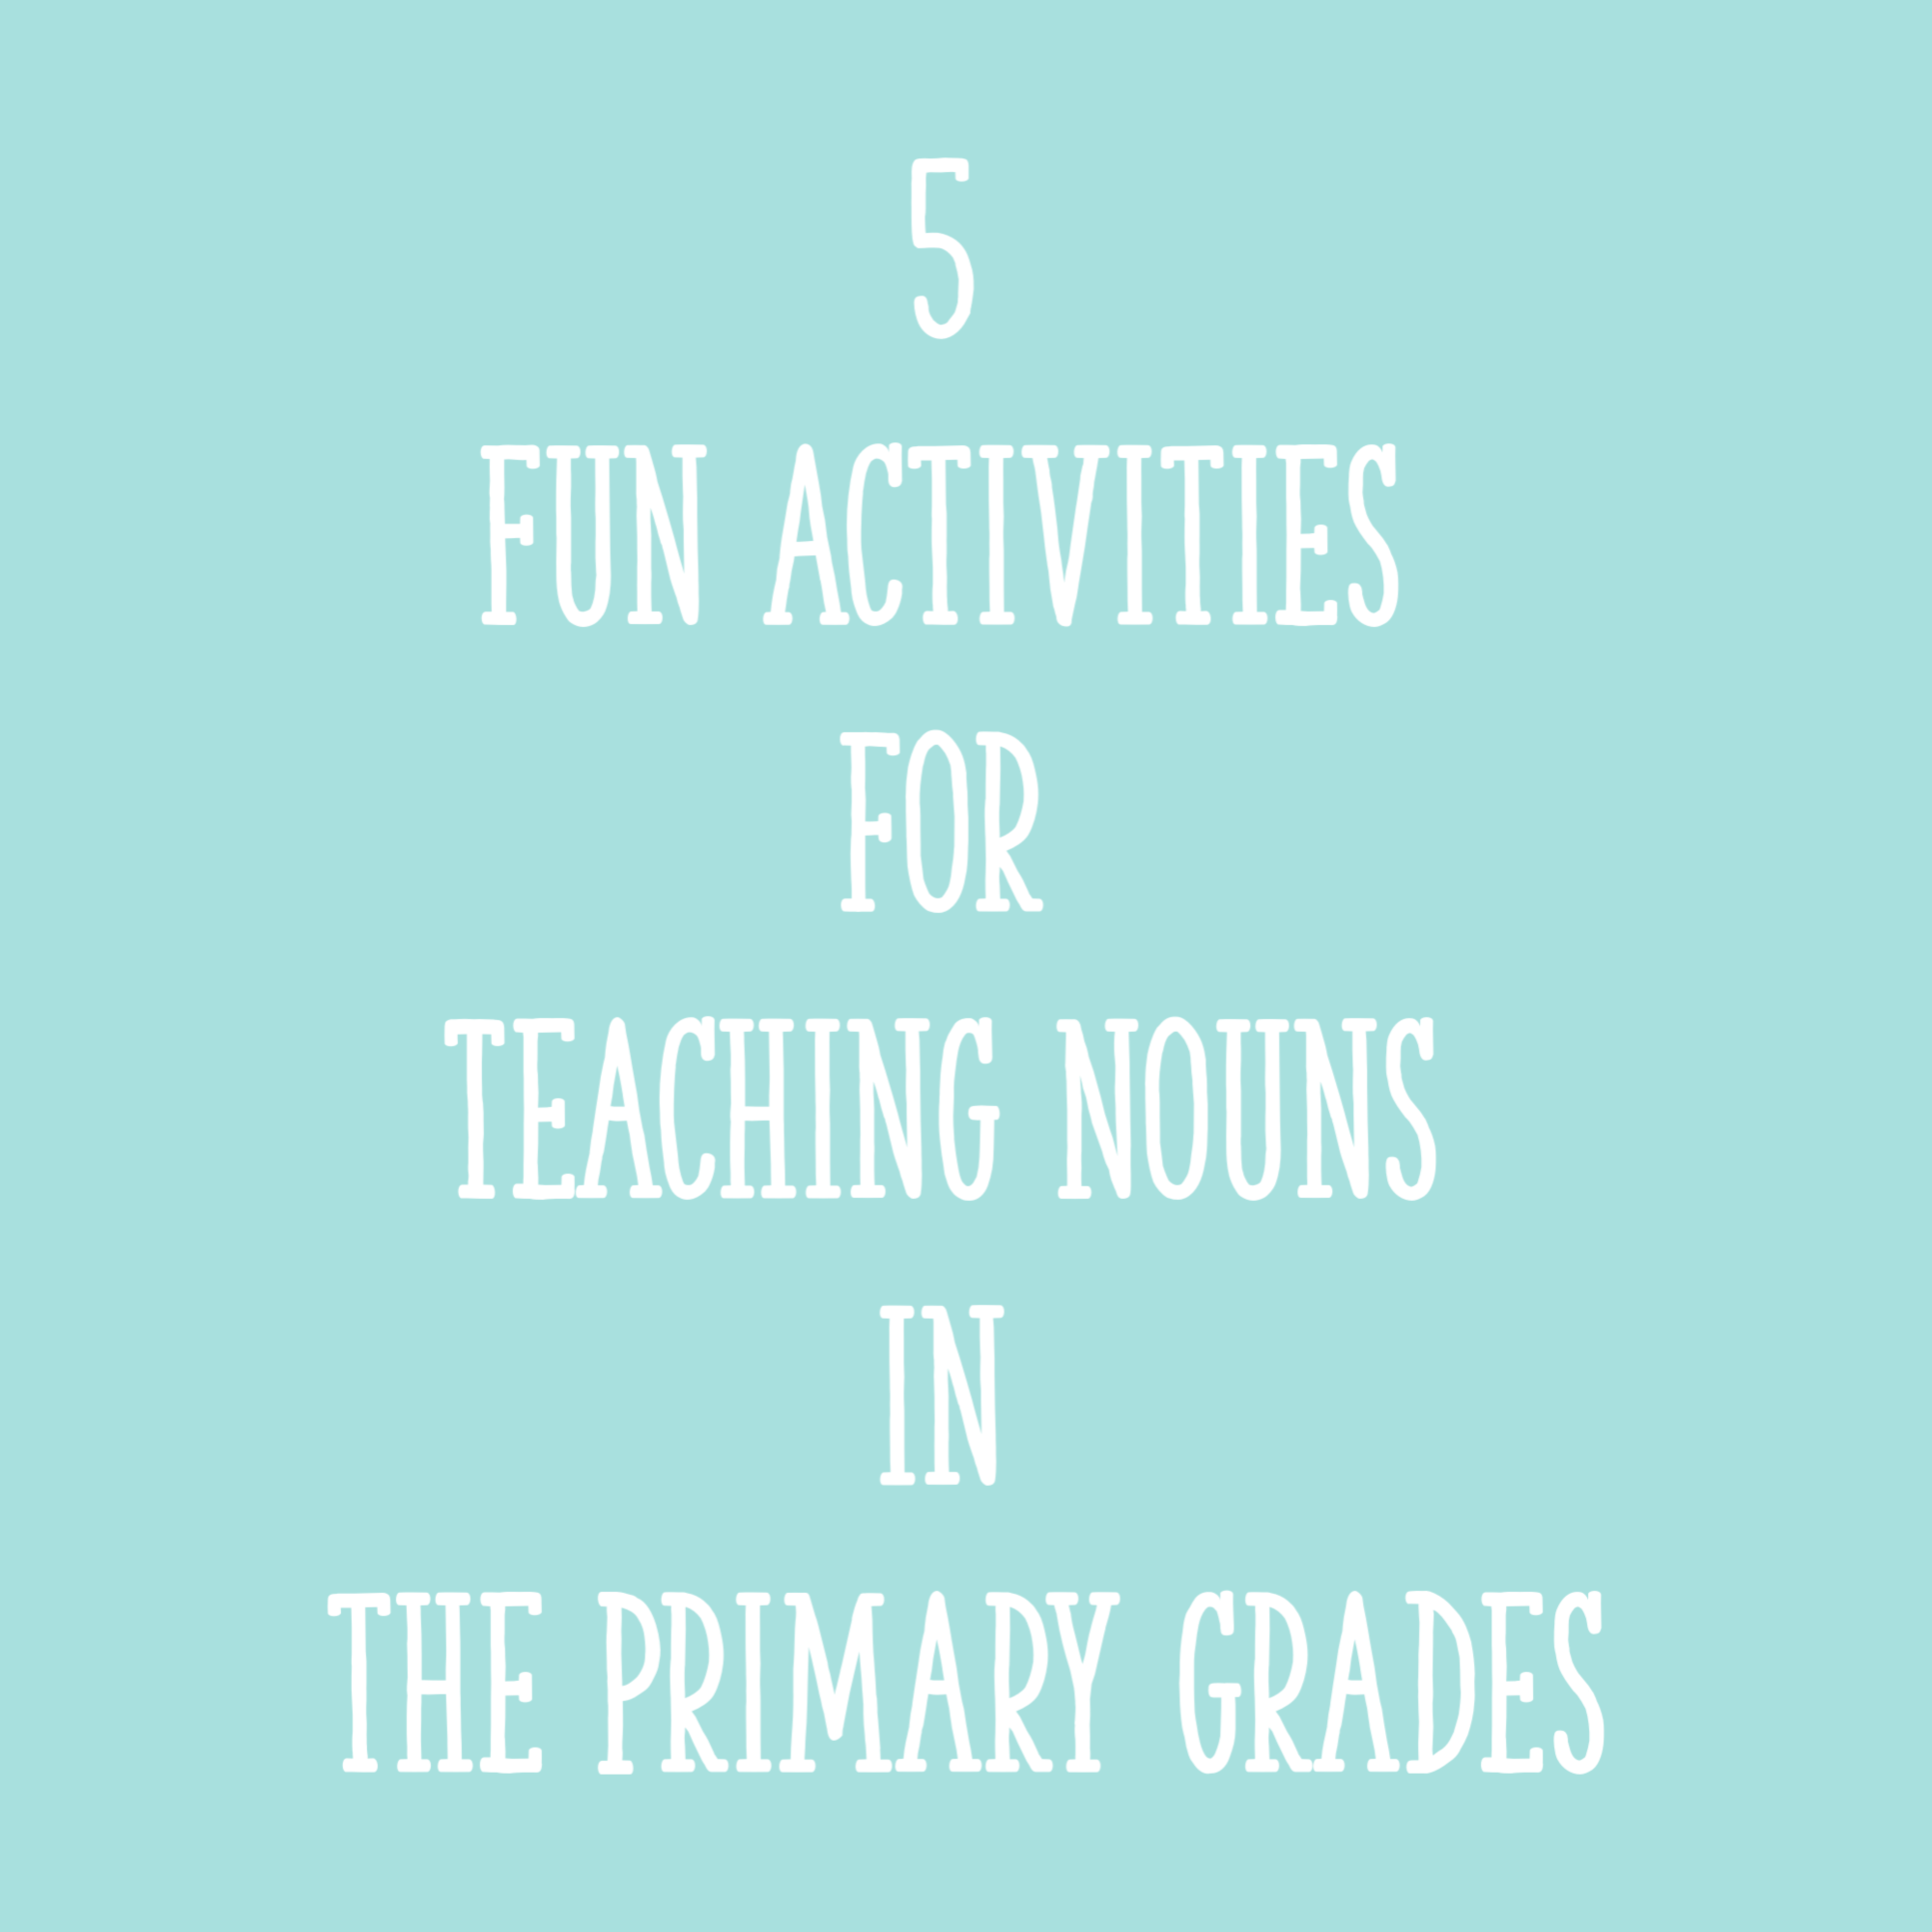 5 Fun Activities For Teaching Nouns In The Primary Grades